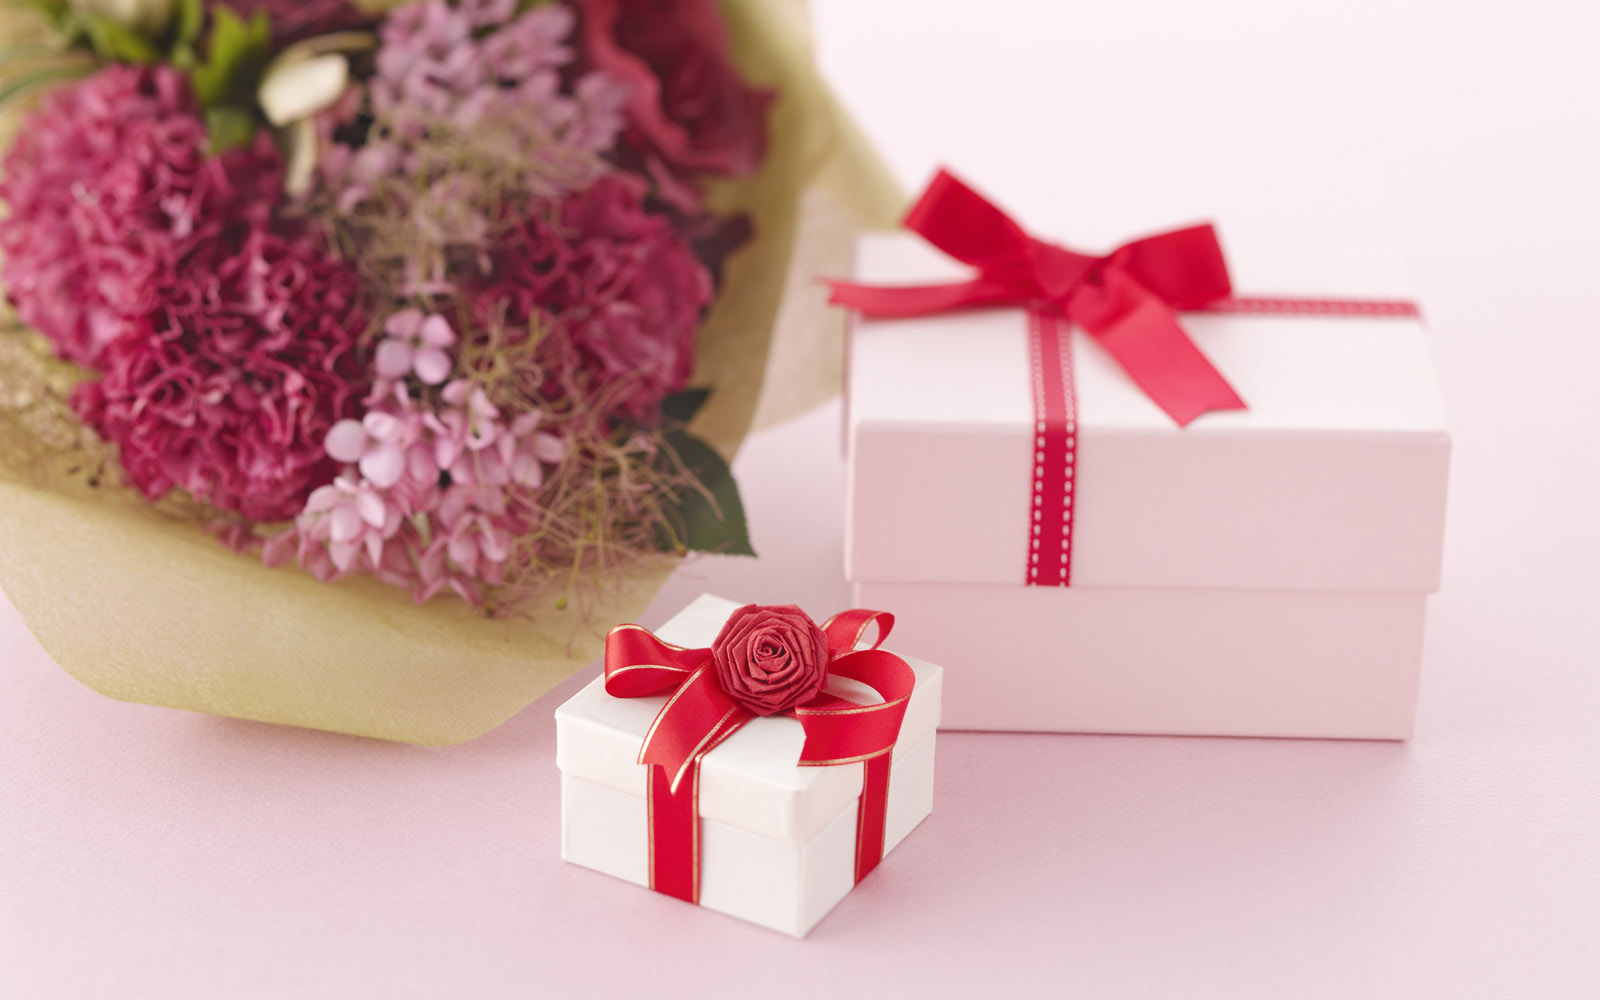 Hd flower gift 3028 flowers gifts festival hd flower gift 3028 negle Choice Image